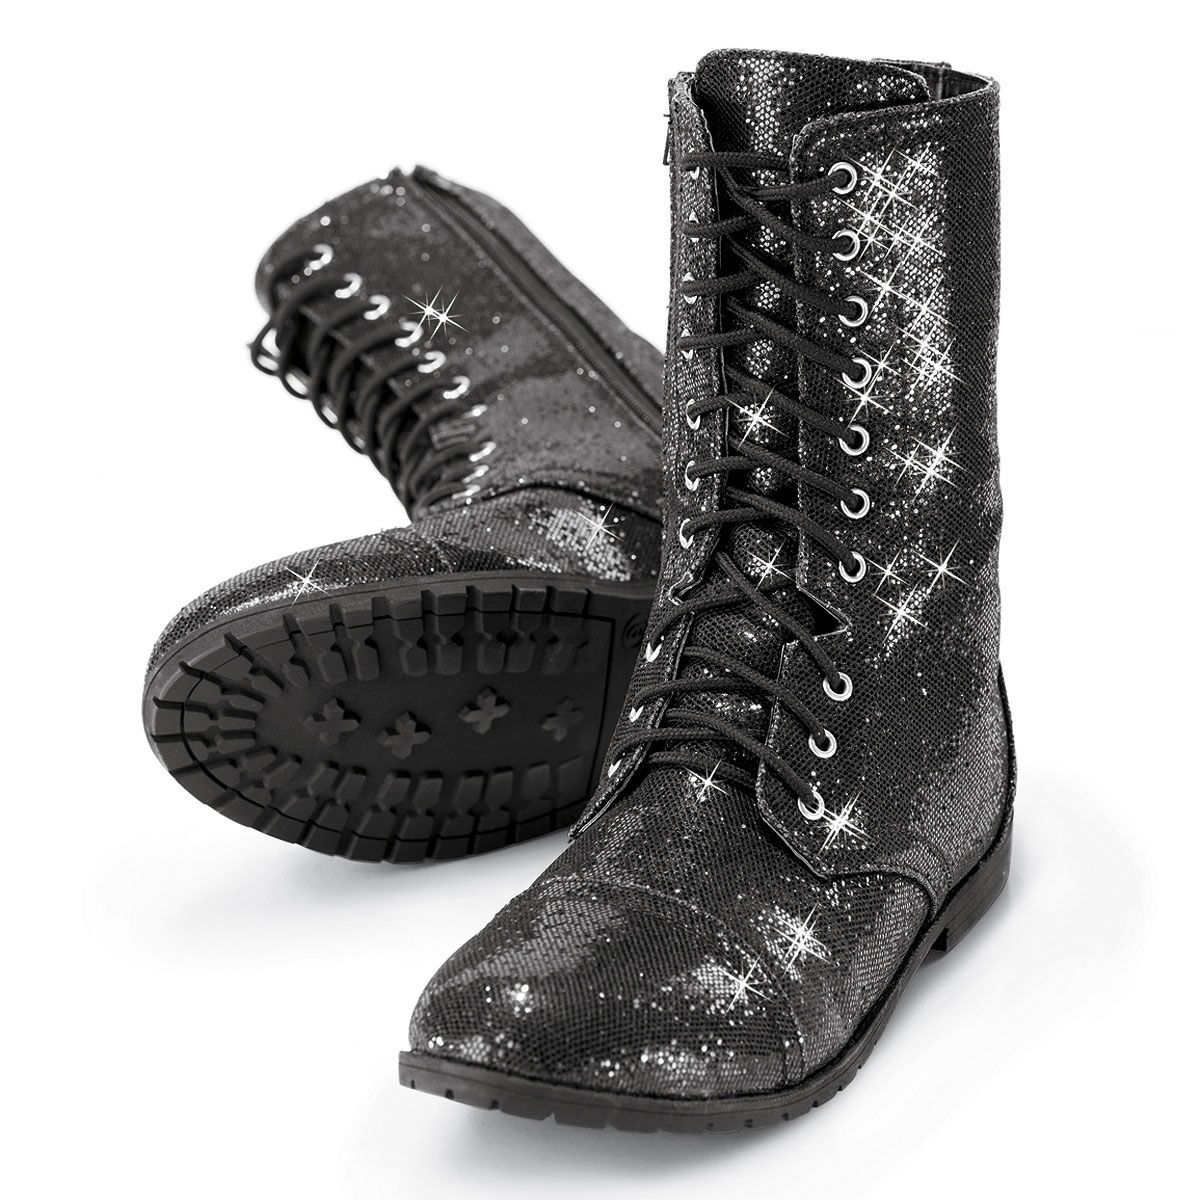 These flashy, sparkling combat boots can go straight from hip-hop ...